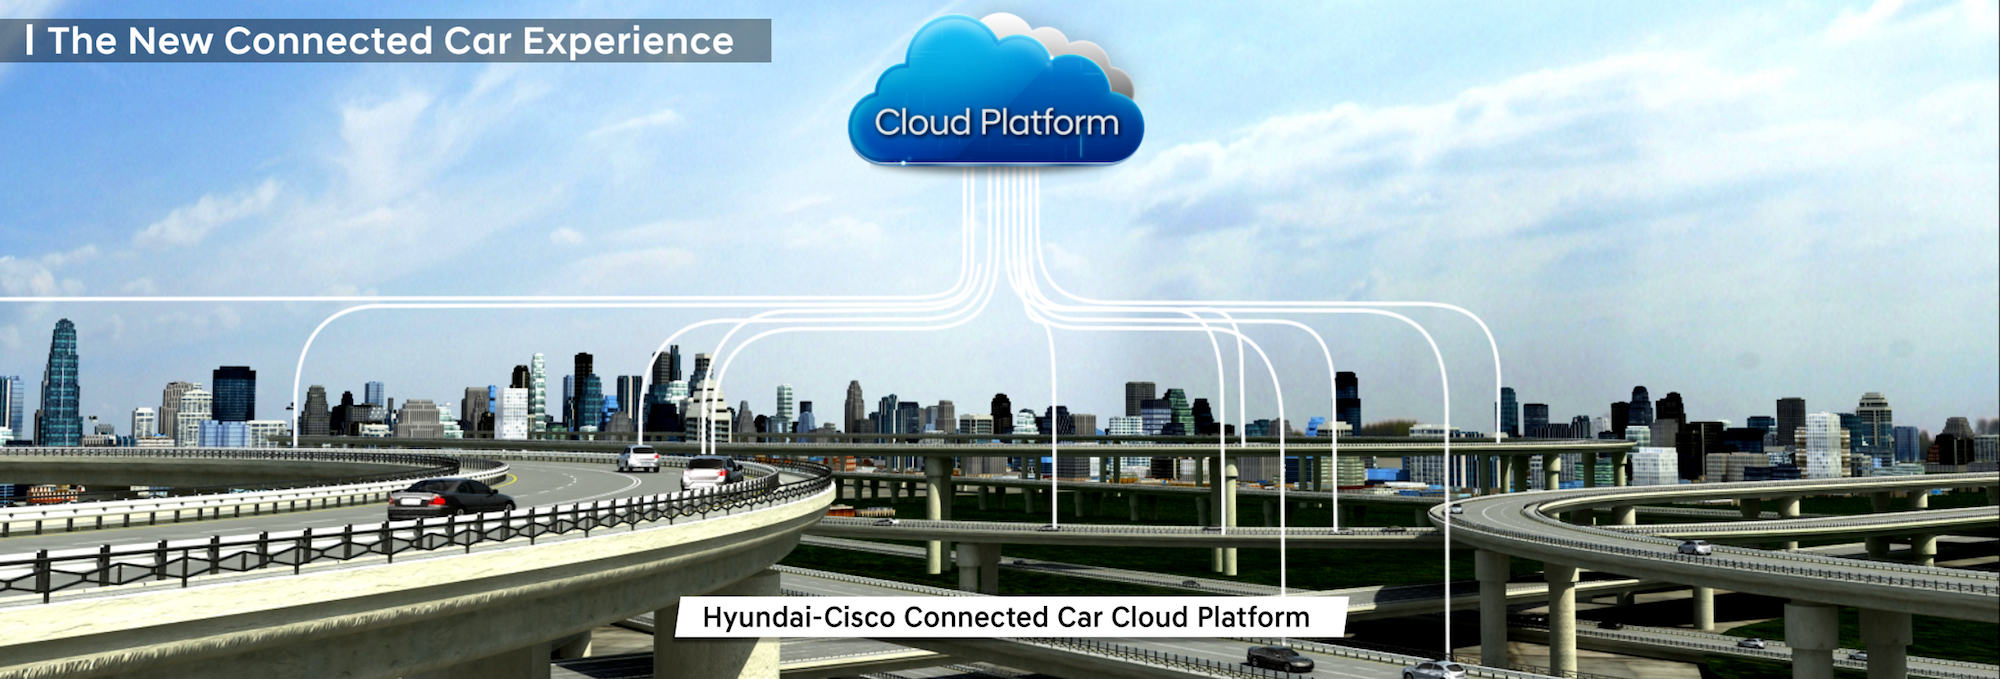 Hyundai Connected Car_Life 3.png